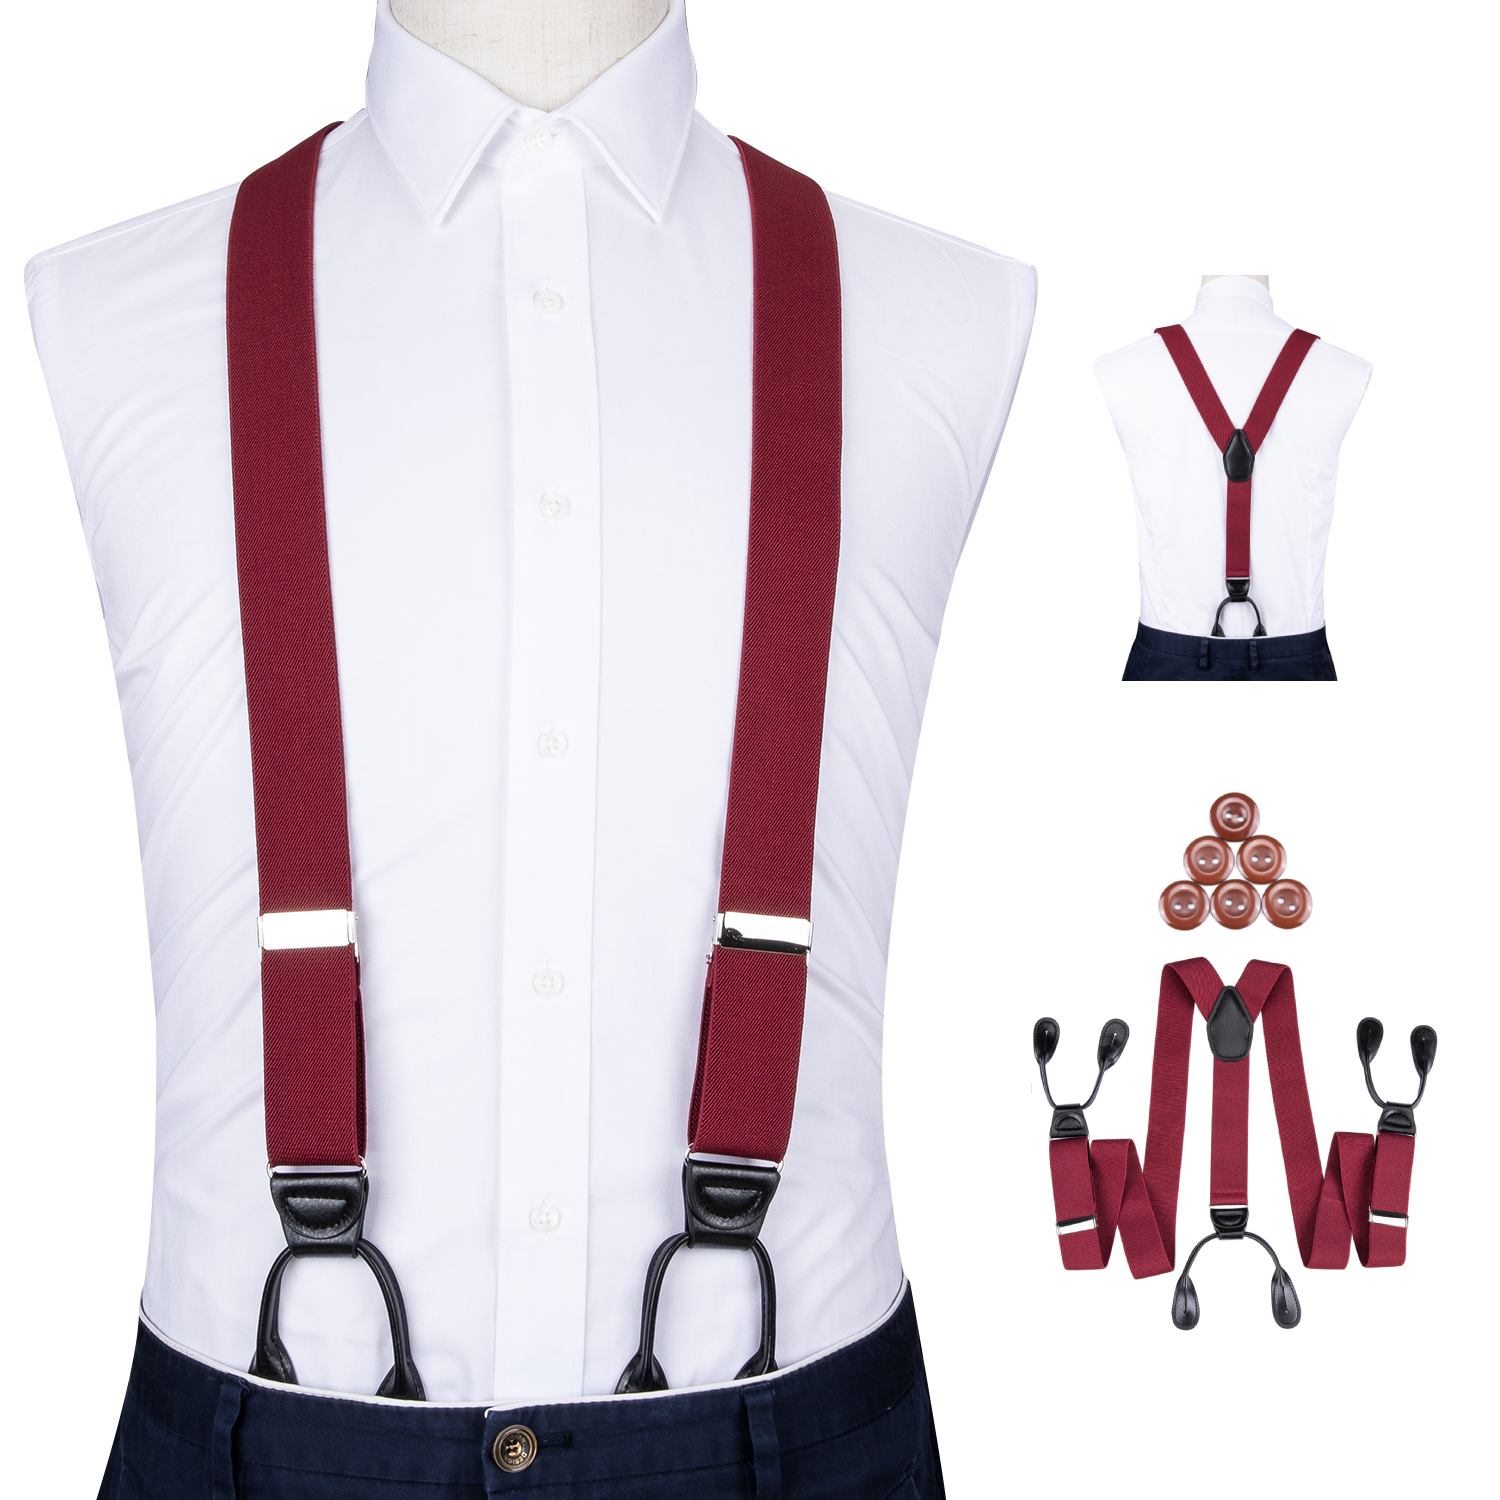 Adjustable Elasticated Adult Suspender Leather Trimmed Button End Y Back Mens Trouser Suspenders Heavy Duty Pants Braces DiBanGu image